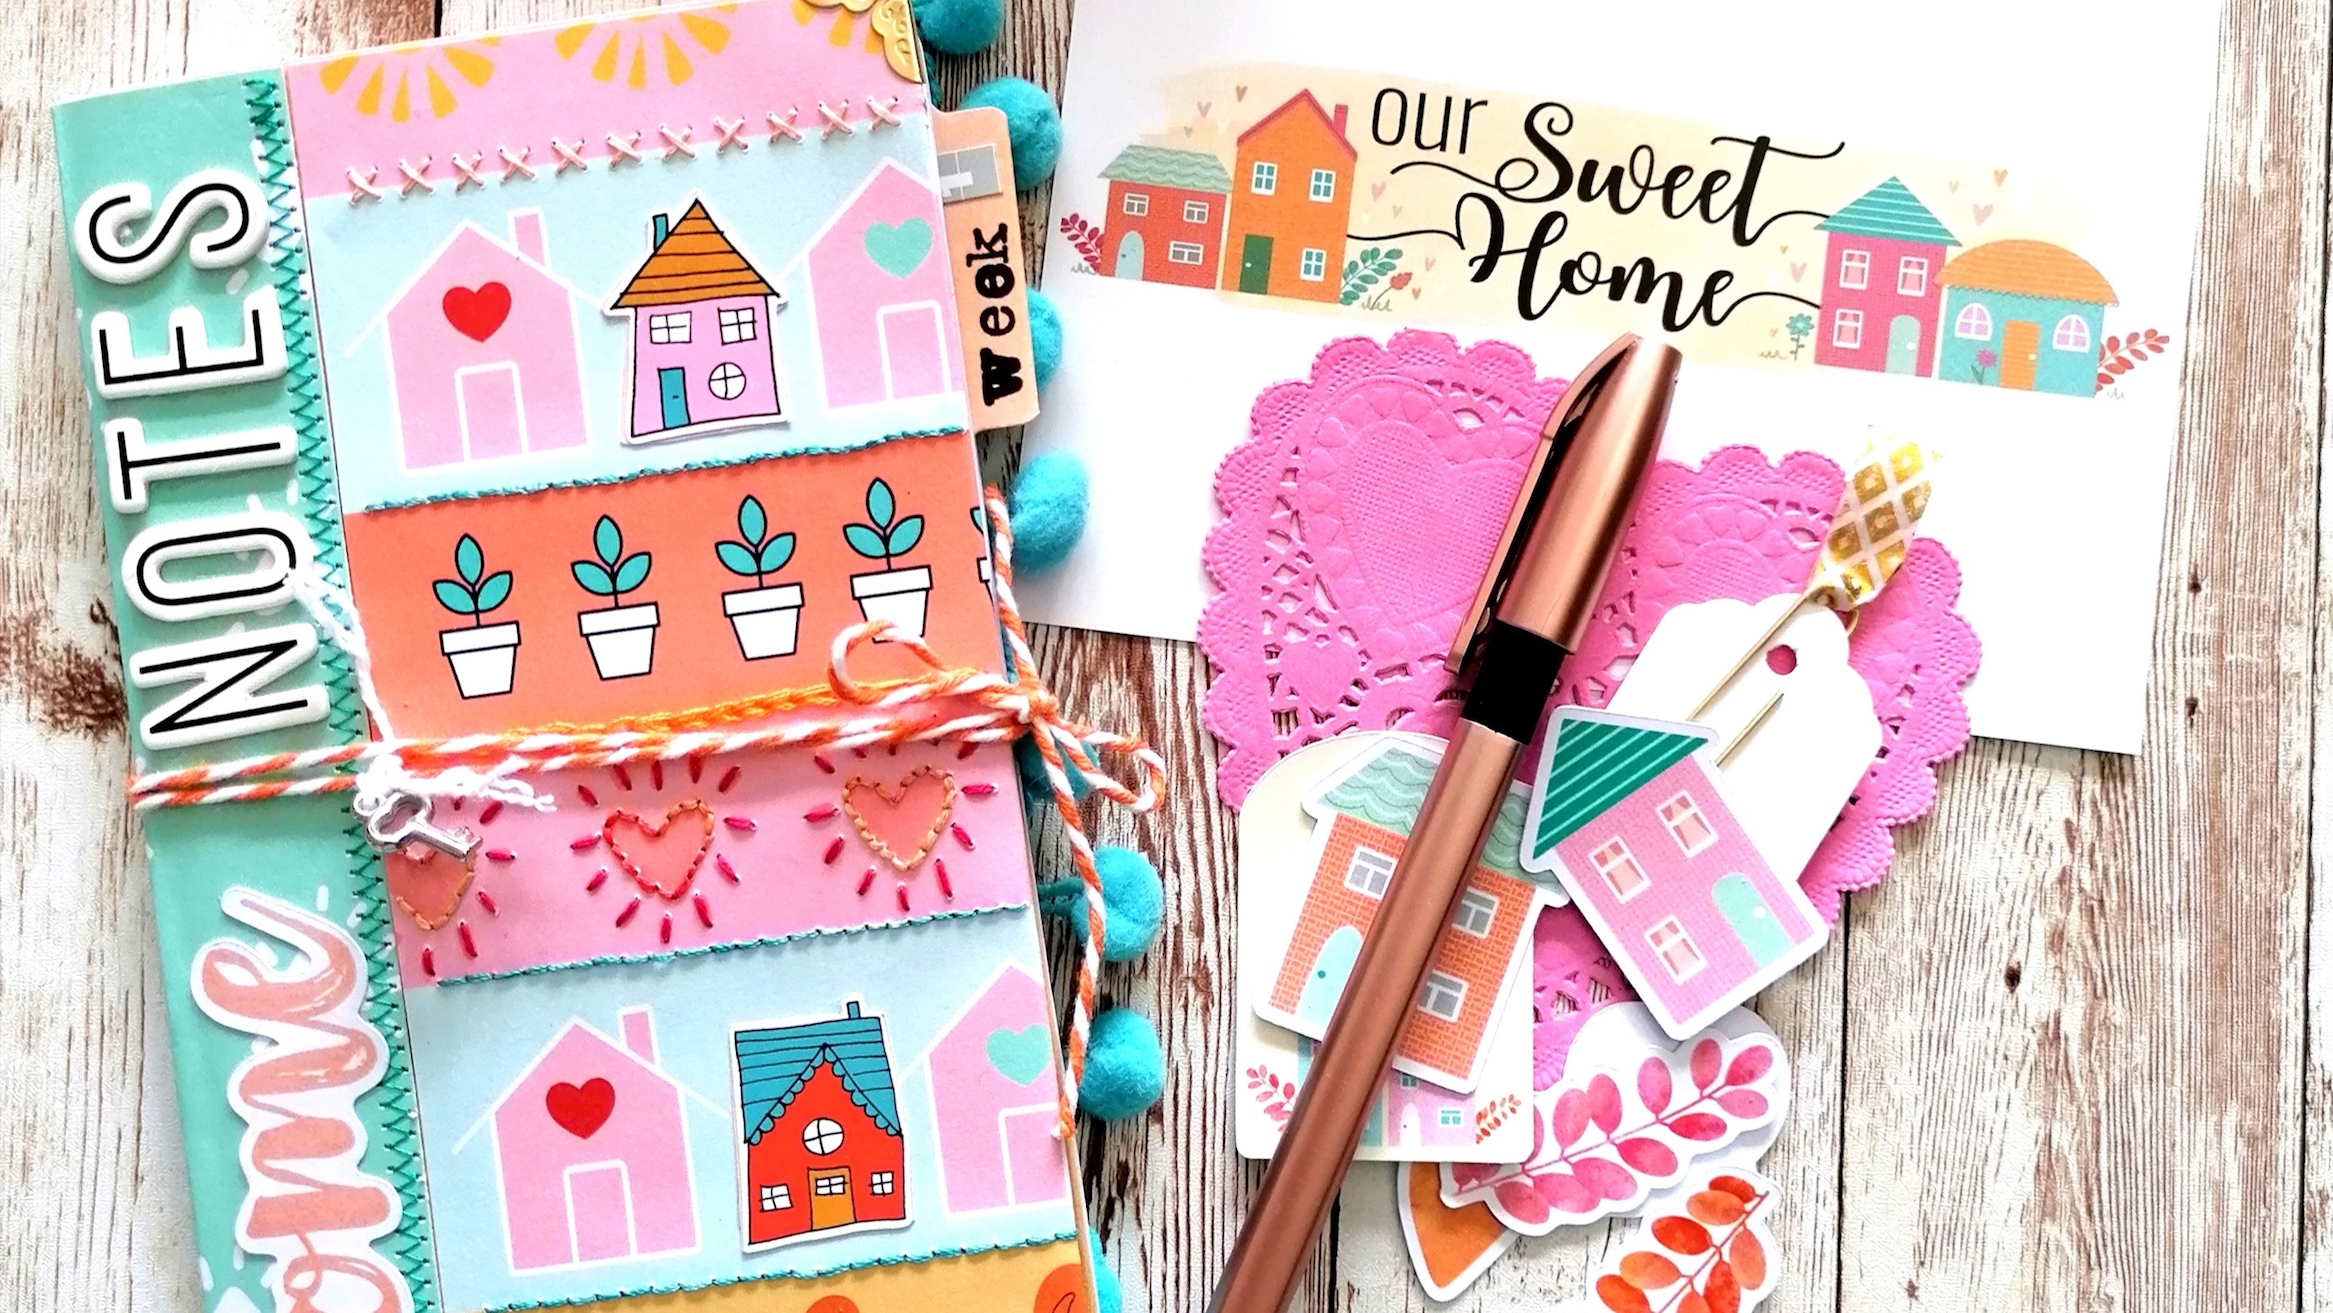 Our 'Not' so sweet home! – Travelers Notebook by Philippa McCray